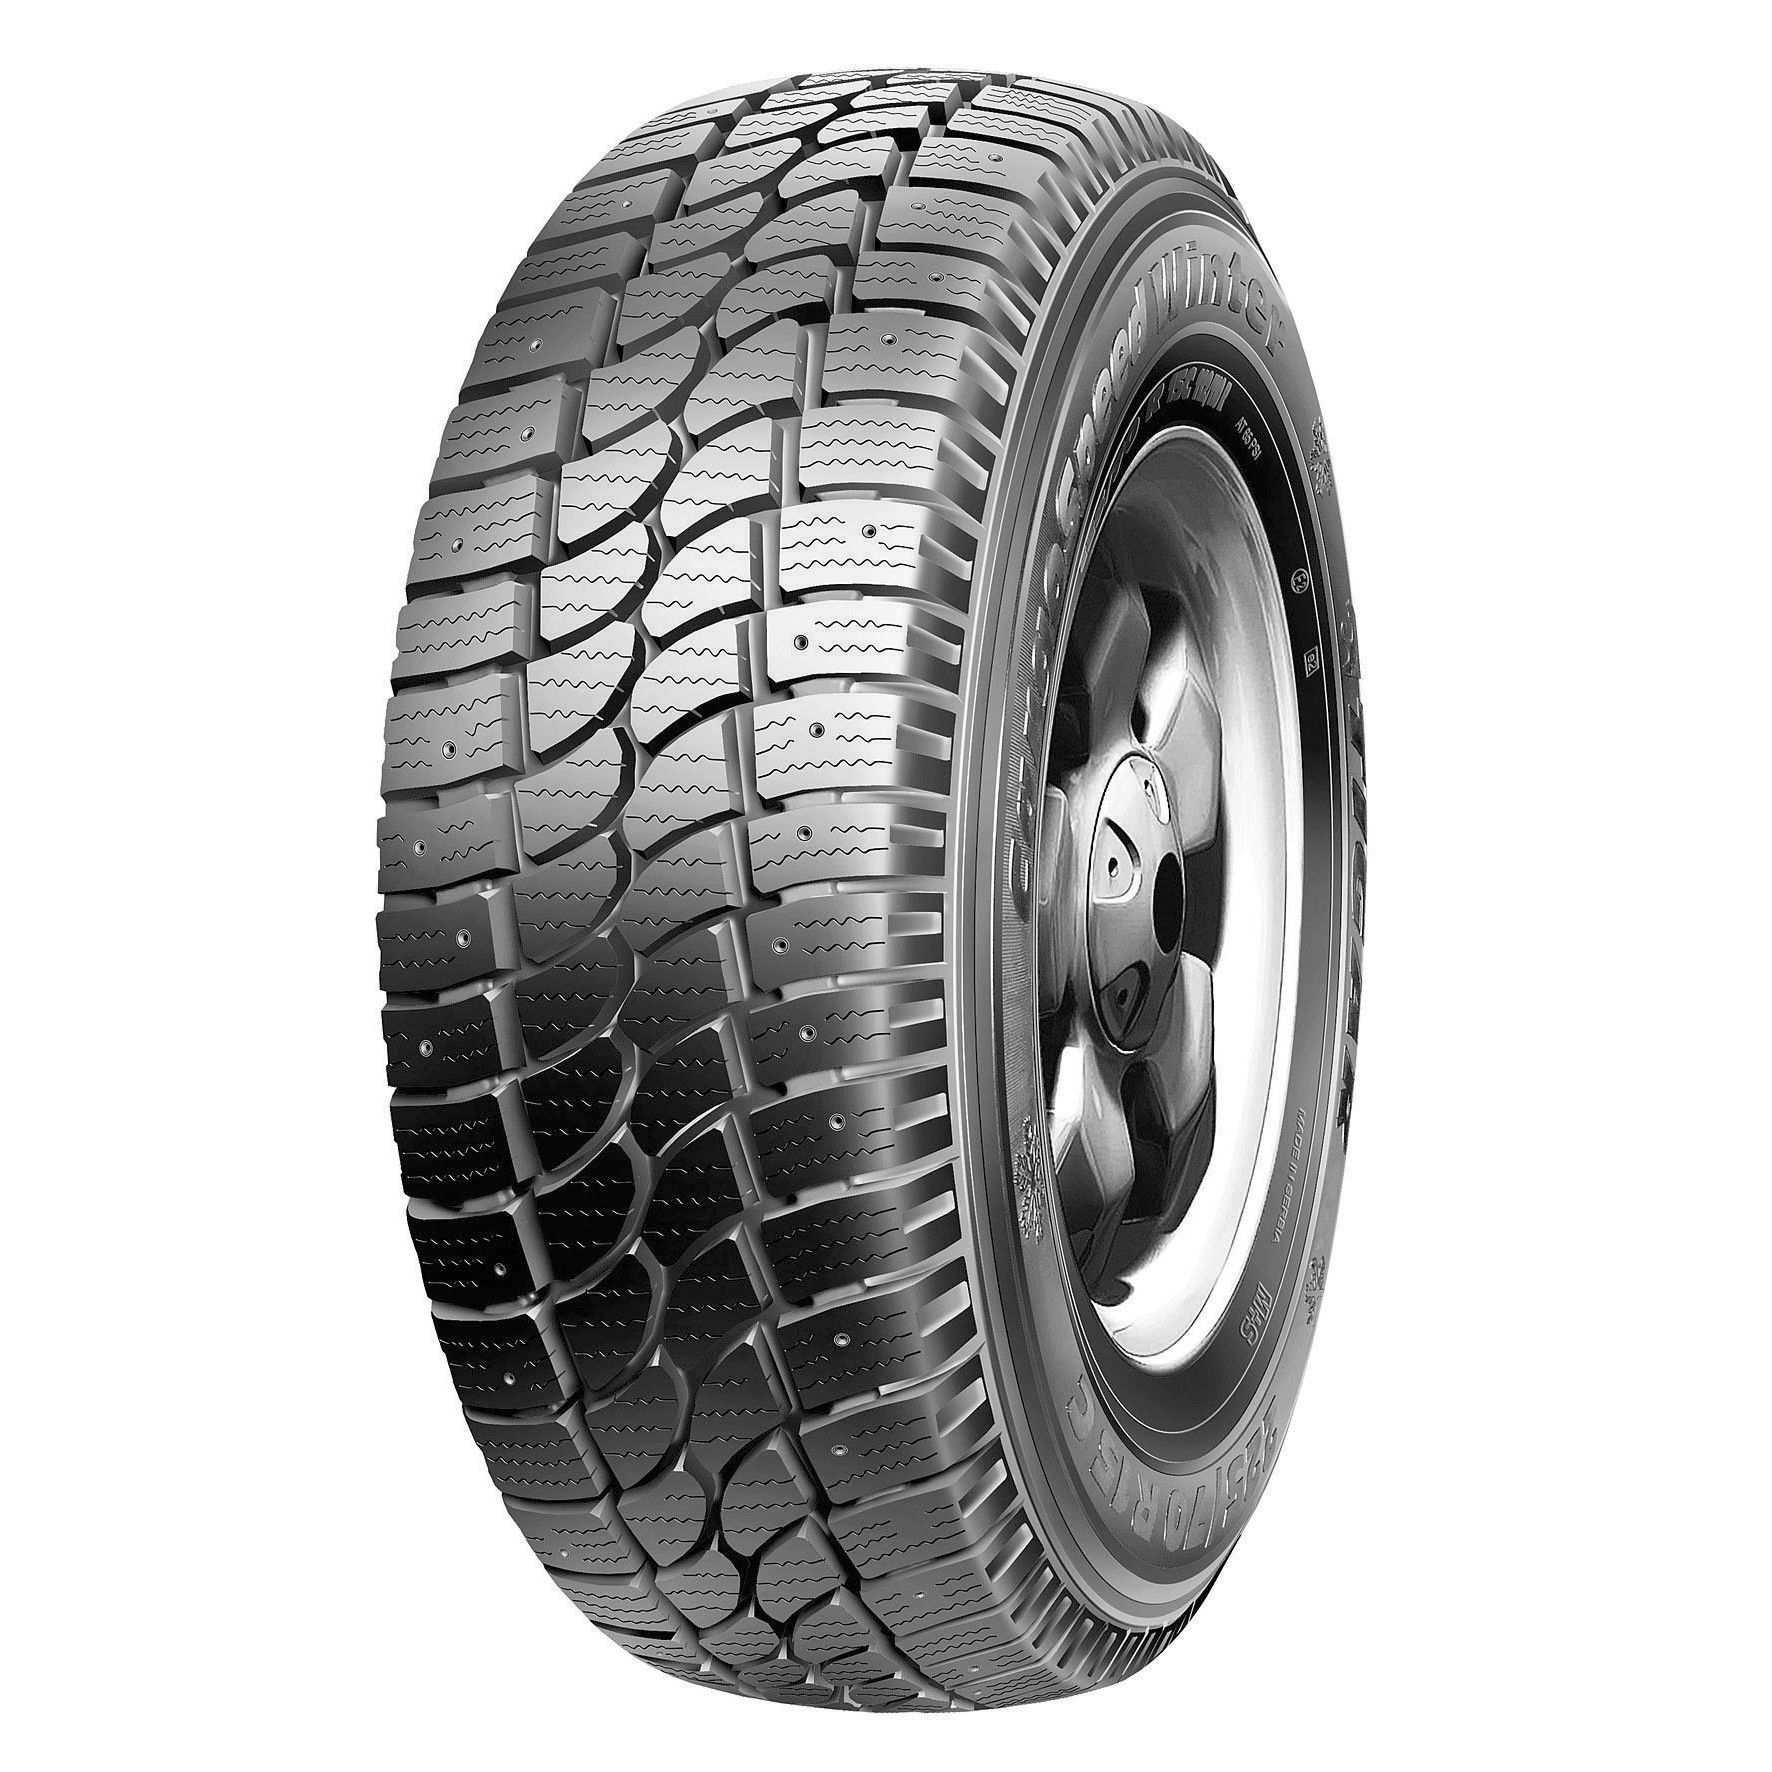 Anvelopa Iarna Tigar CS Winter 225/75R16C 118/116R